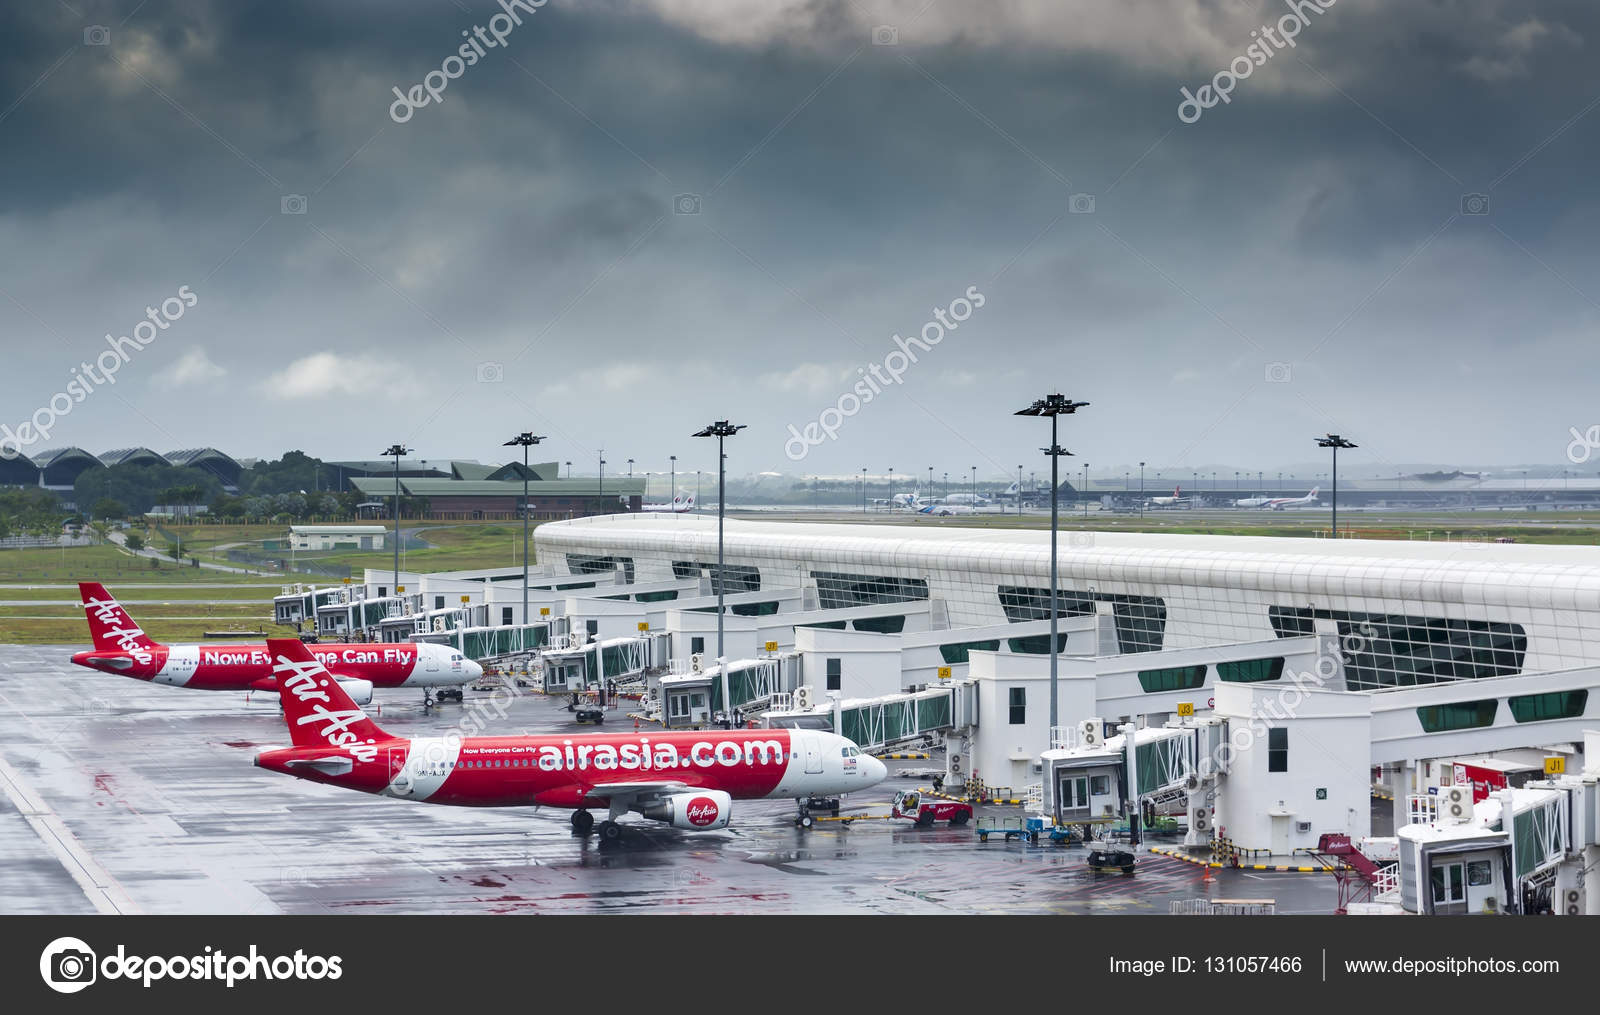 low cost carrier and air asia Air asia flies to tiruchirappalli in tamil nadu, hyderabad in andhra pradesh, bengaluru in karnataka, kolkata in west bengal from its kuala lumpur, malaysia, base air india express  air india express is the low-cost spinoff of state carrier air india.